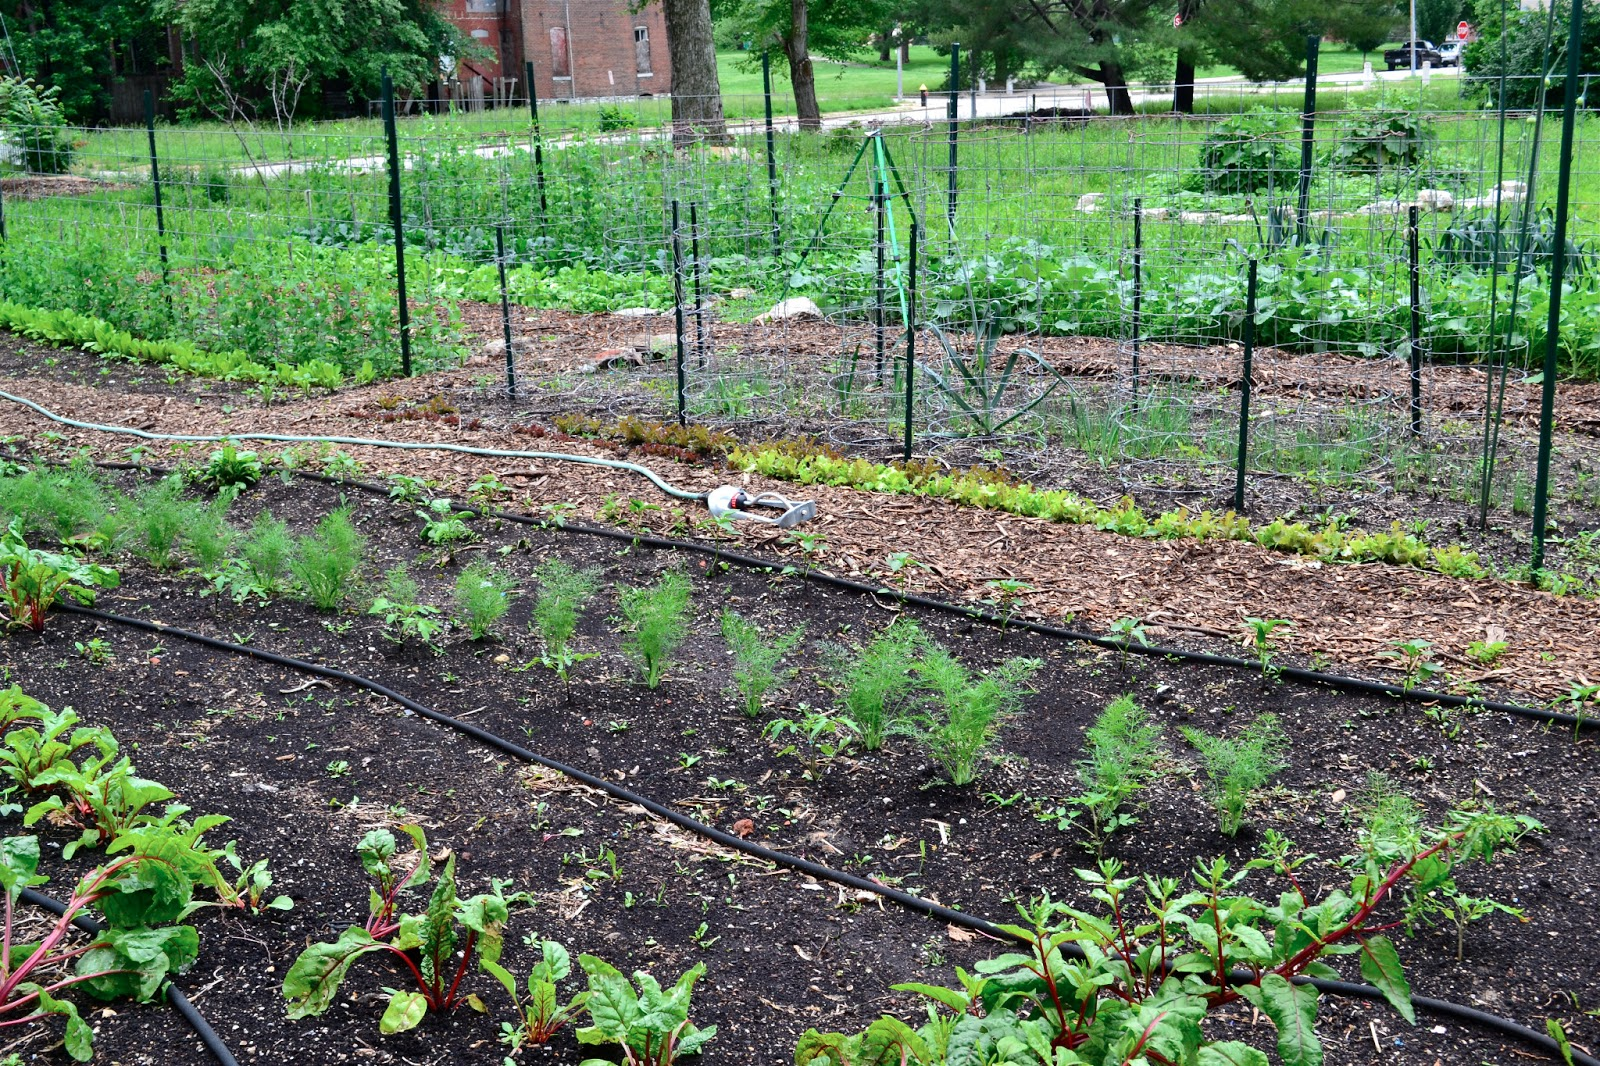 Community garden in Hyde Park neighborhood of St. Louis City